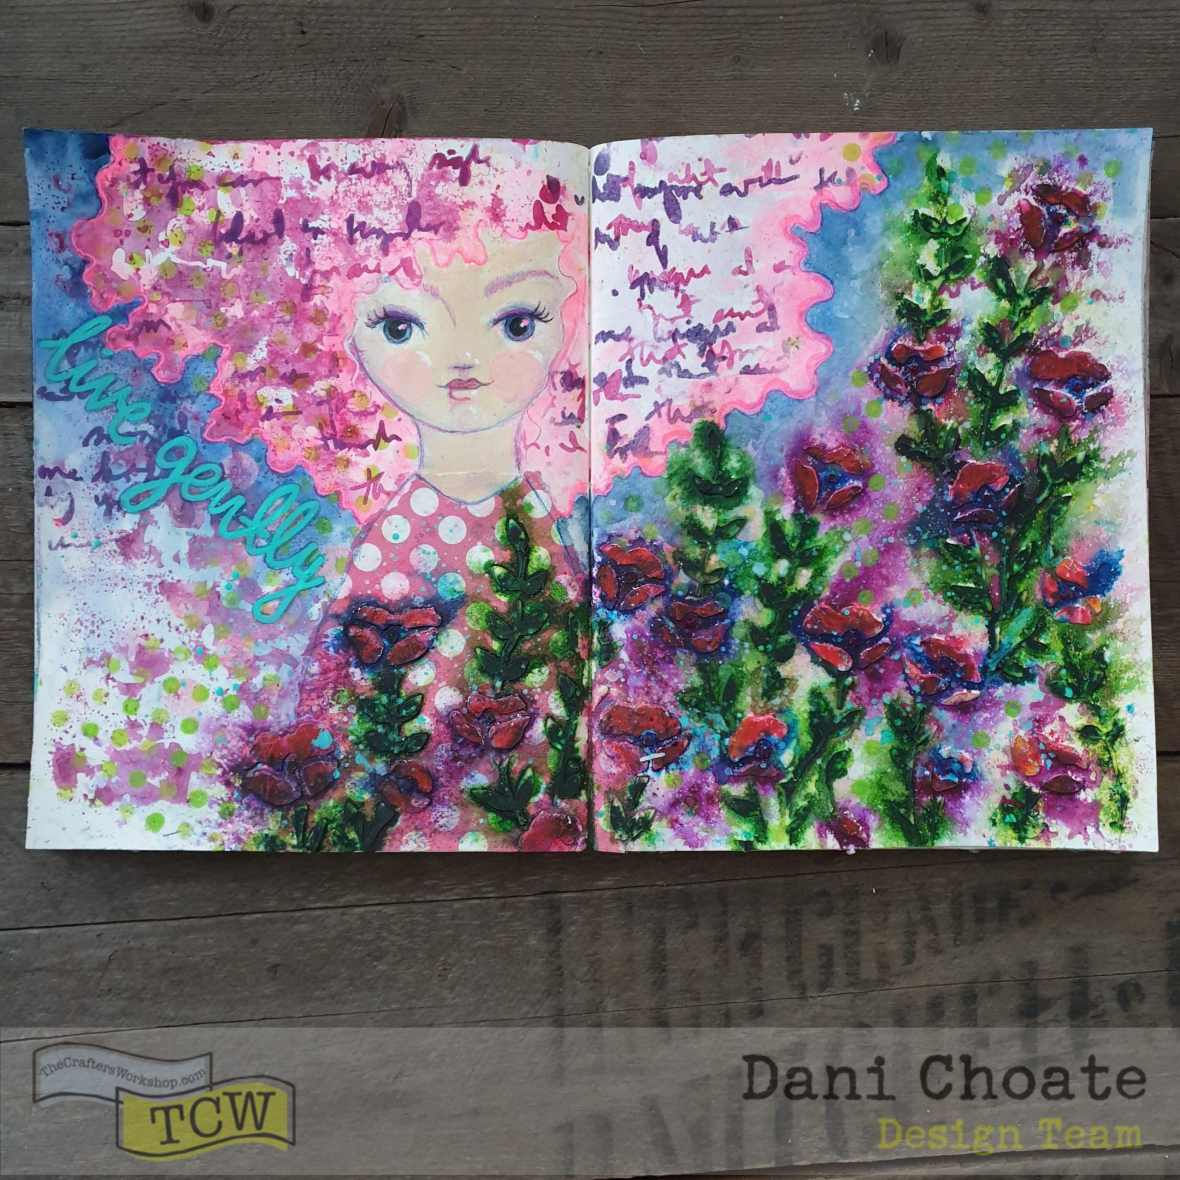 TCW541 Believe Script TCW725 Wild Blooms Art Journal Mixed media